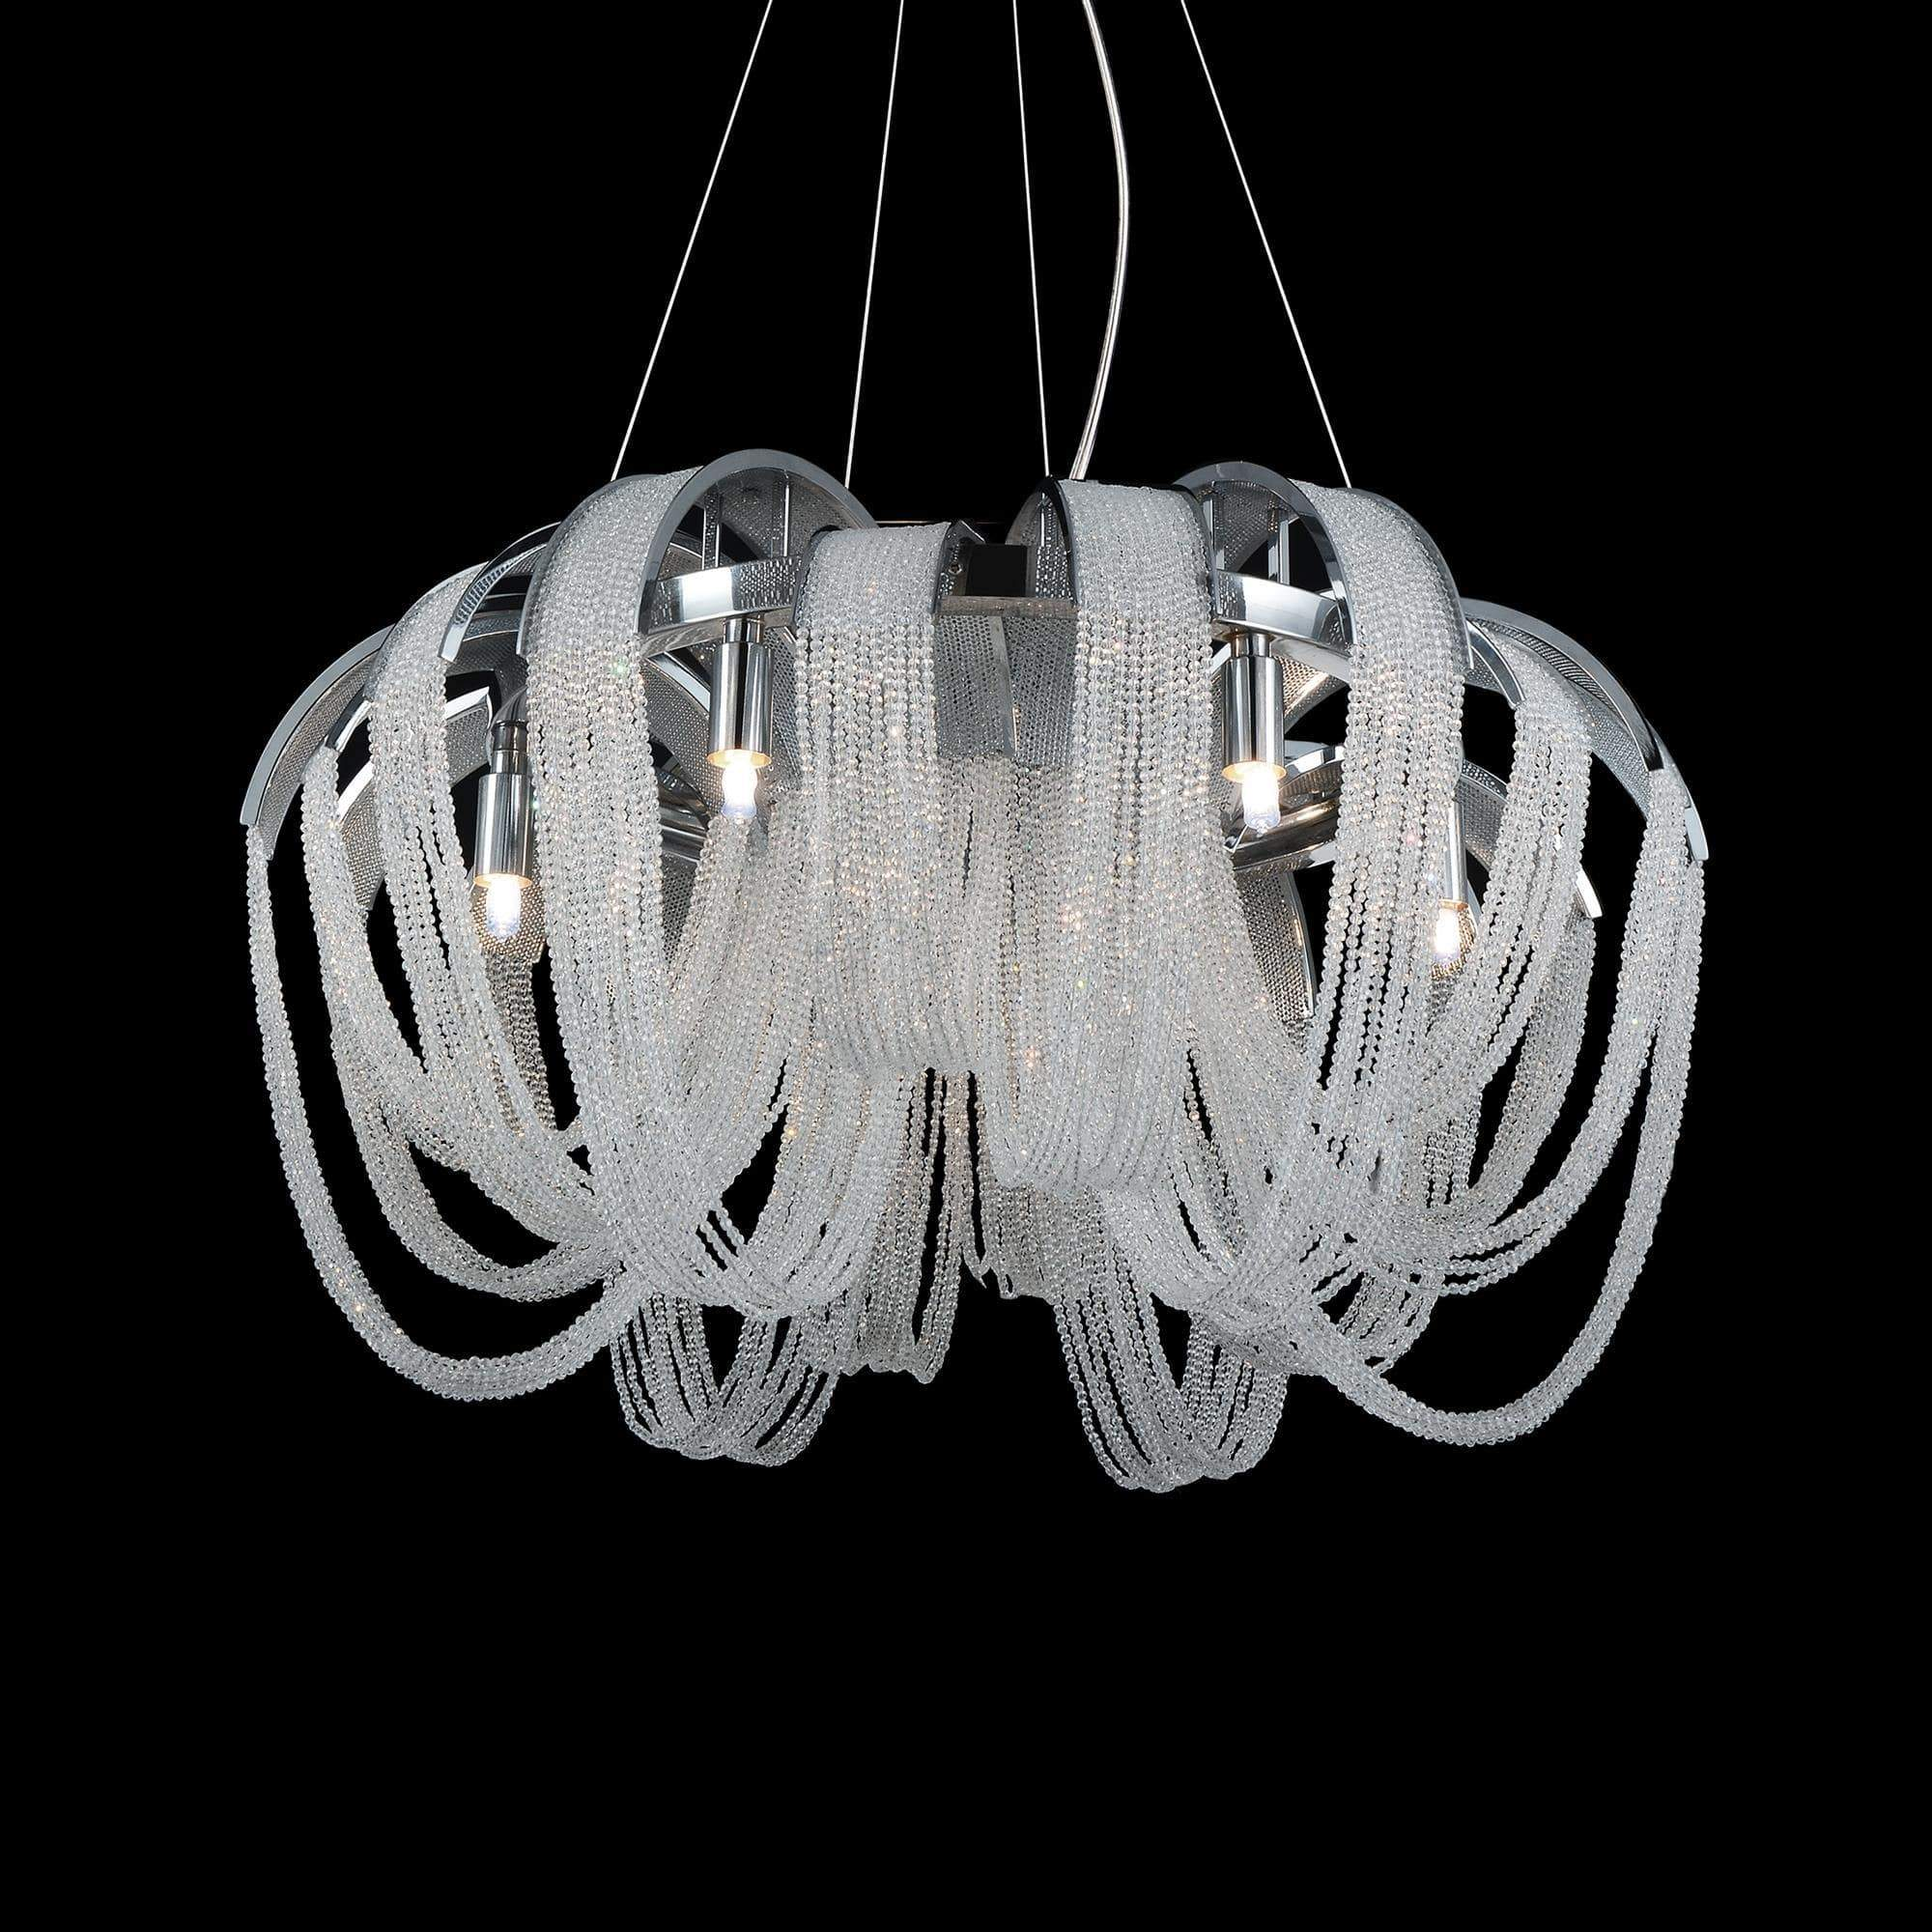 CWI Lighting Chandeliers Chrome / K9 Clear Engaged 8 Light Down Chandelier with Chrome finish by CWI Lighting 5615P22C